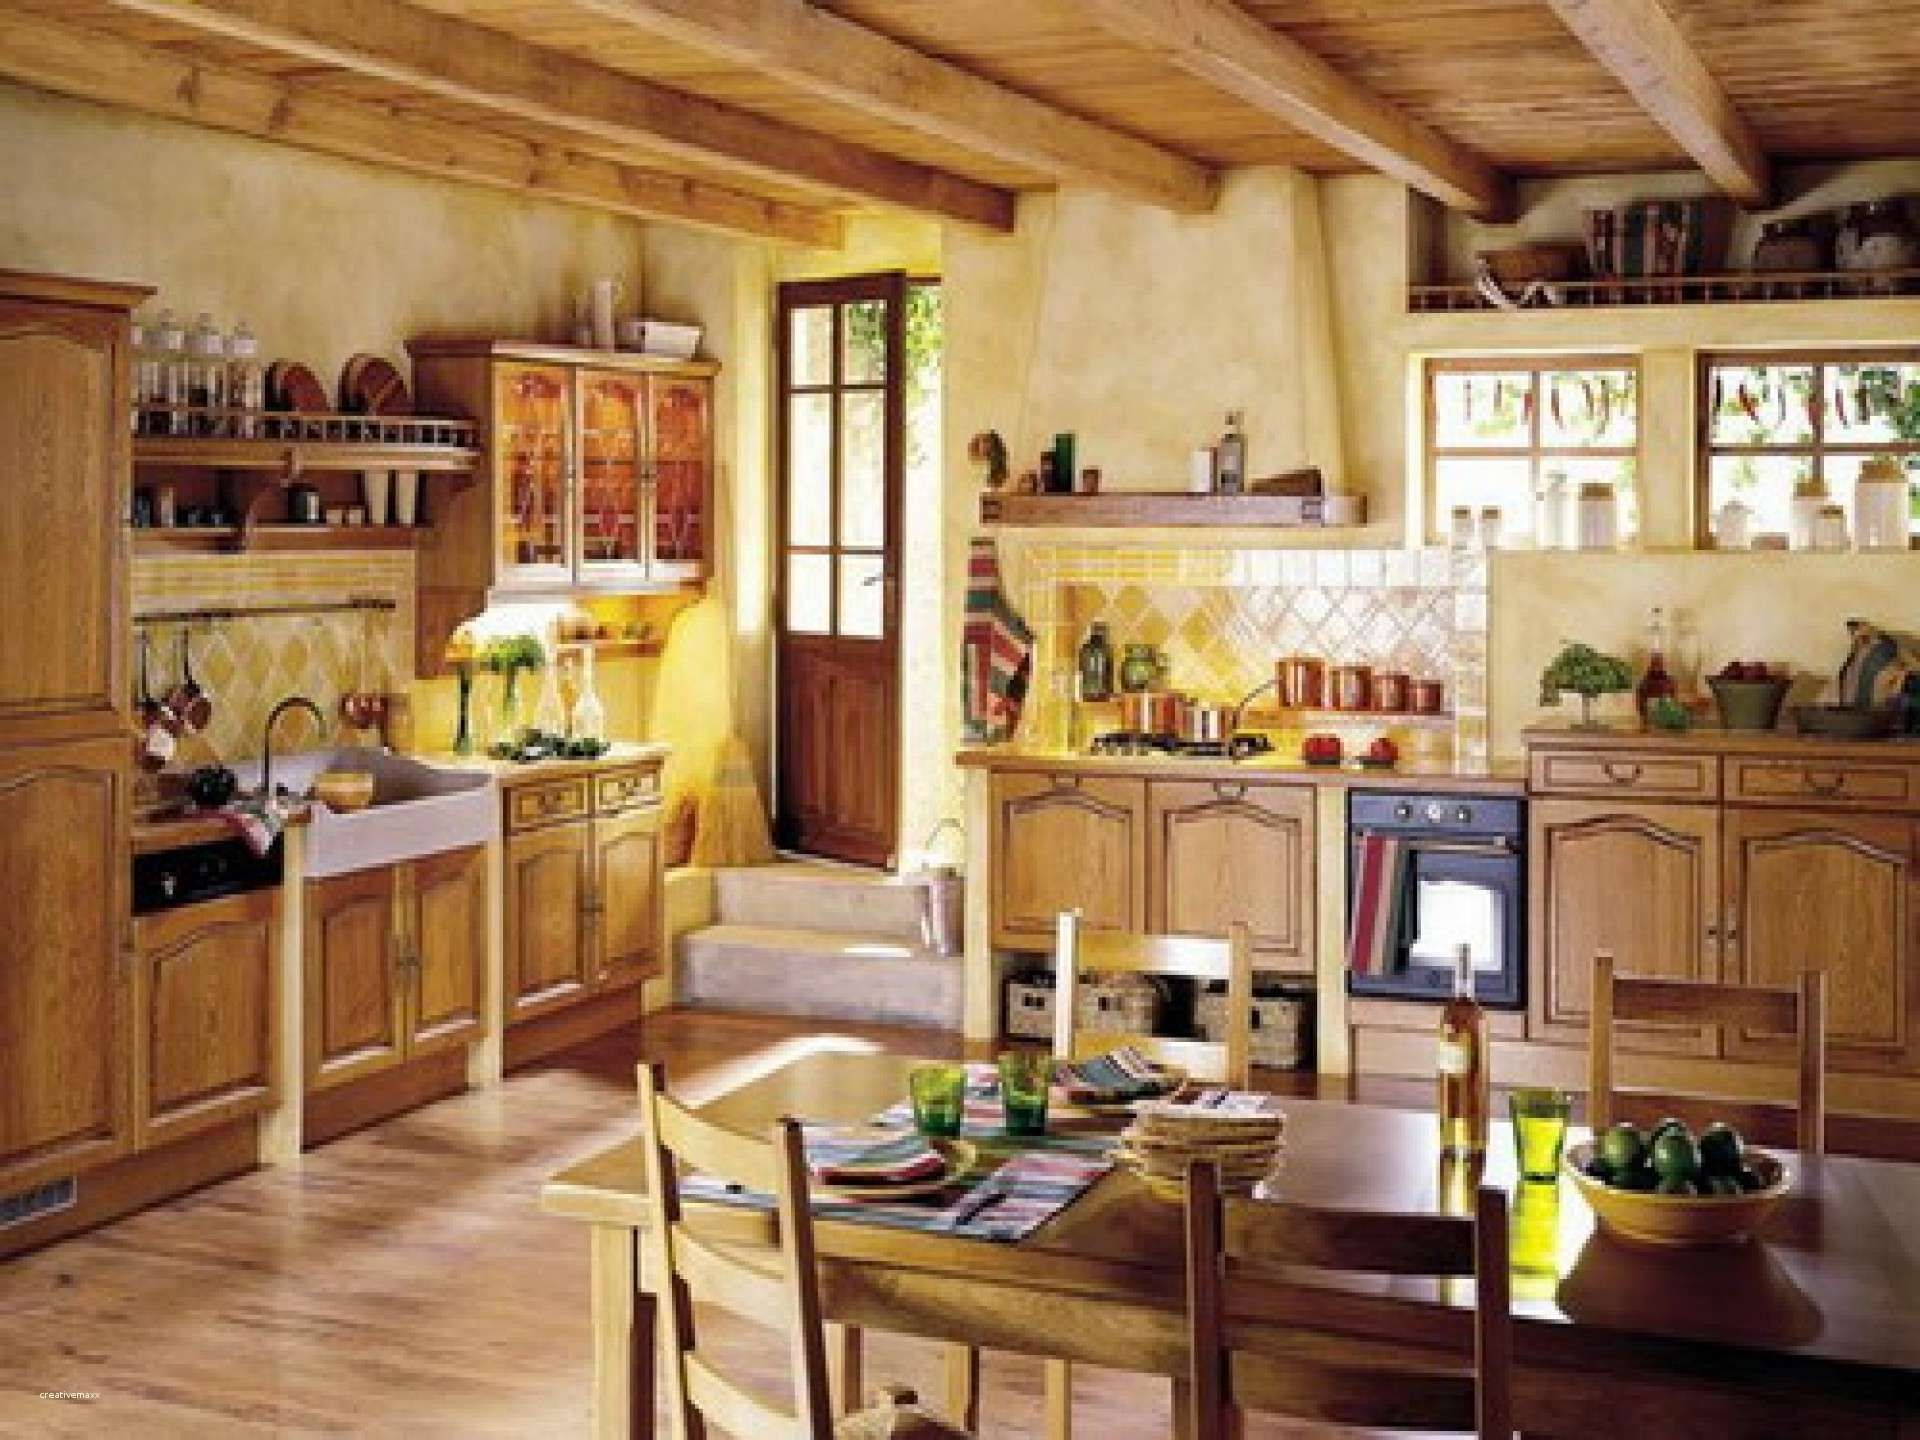 30 Awesome Farmhouse Style On A Budget Kitchen Ideas  Budget Alluring Kitchen Designs On A Budget Design Inspiration